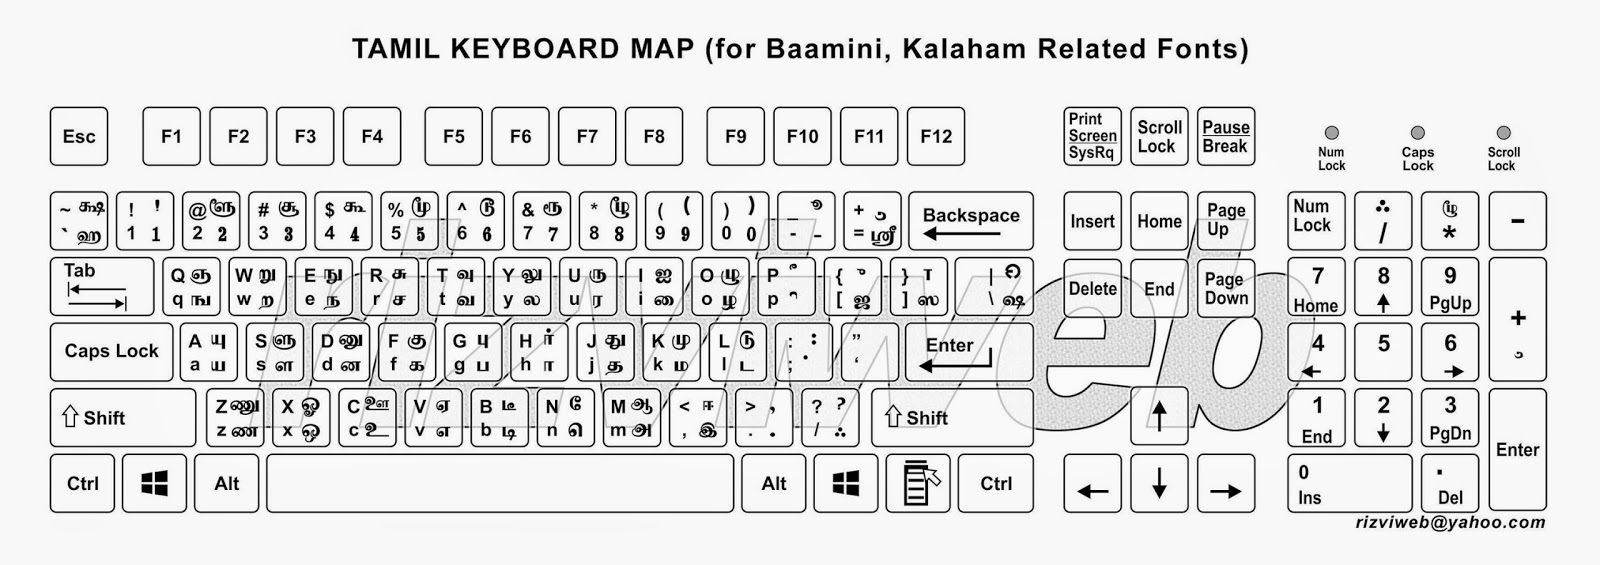 Rizviweb Kattankudy Sri Lanka Tamil Font Download And Tamil - Map us keyboard